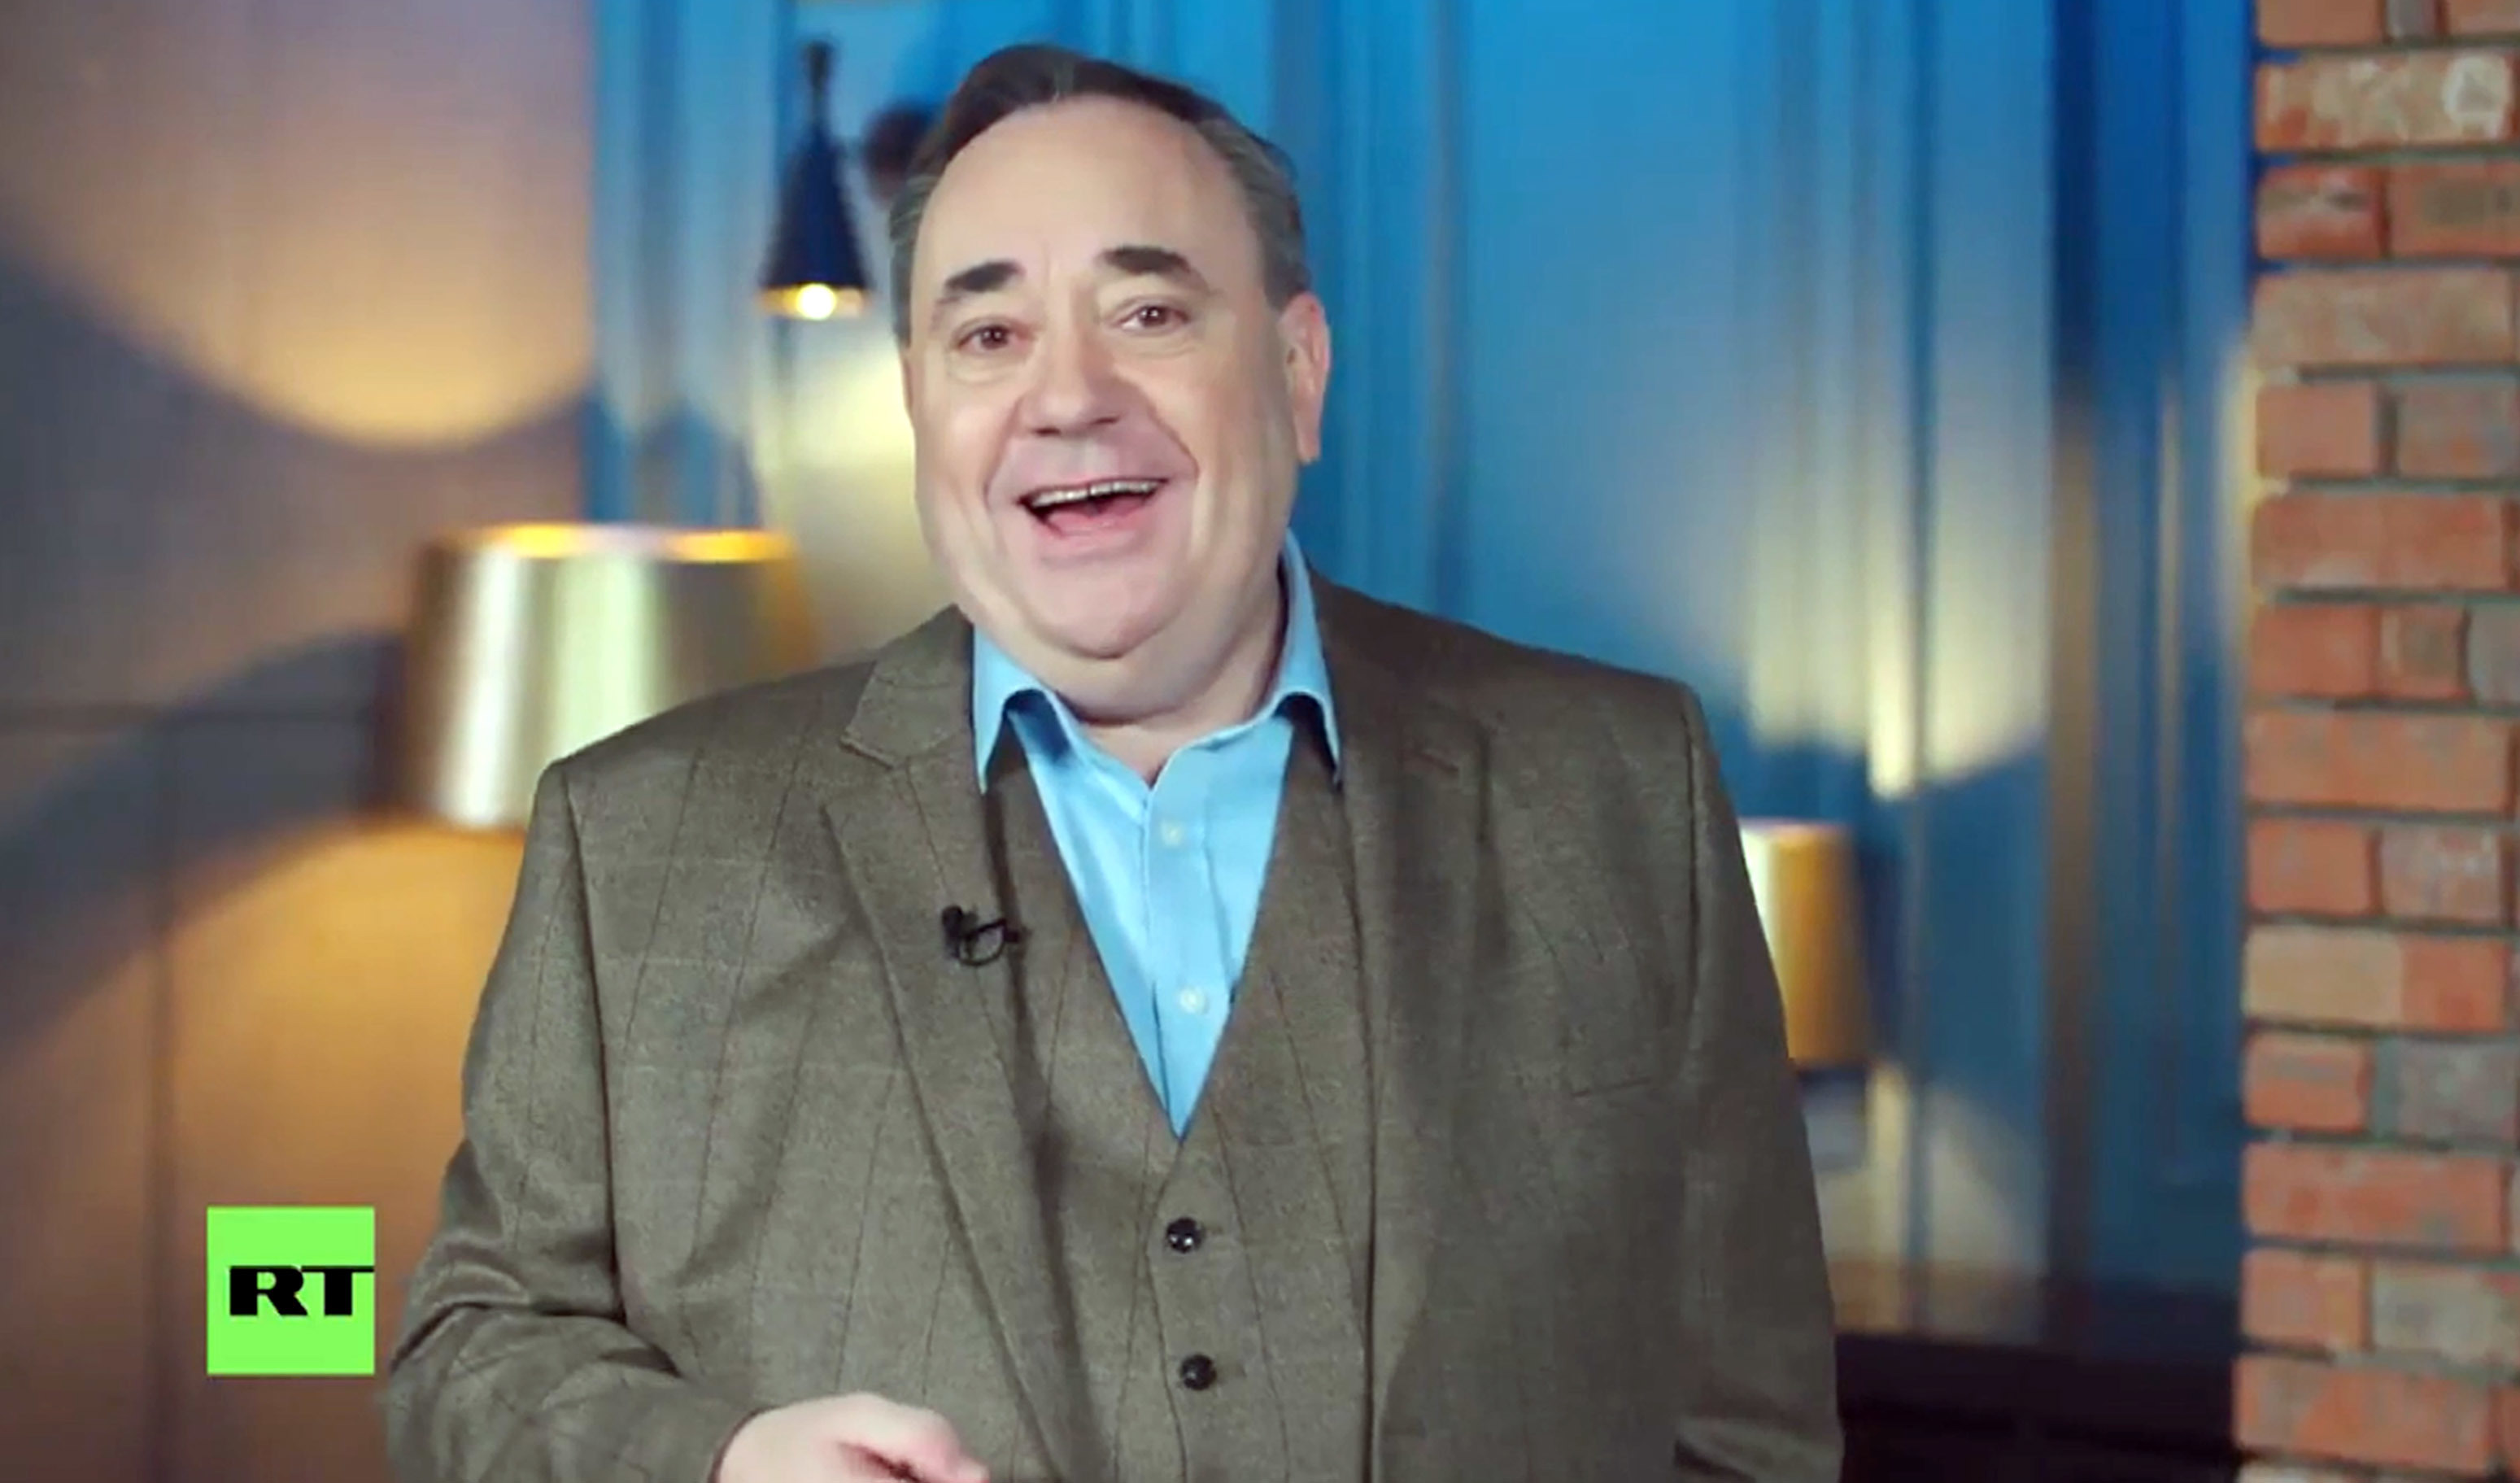 The Alex Salmond Show will be broadcast on RT - formerly known as Russia Today - every Thursday from next week. (RT/Universal News And sport (Europe)